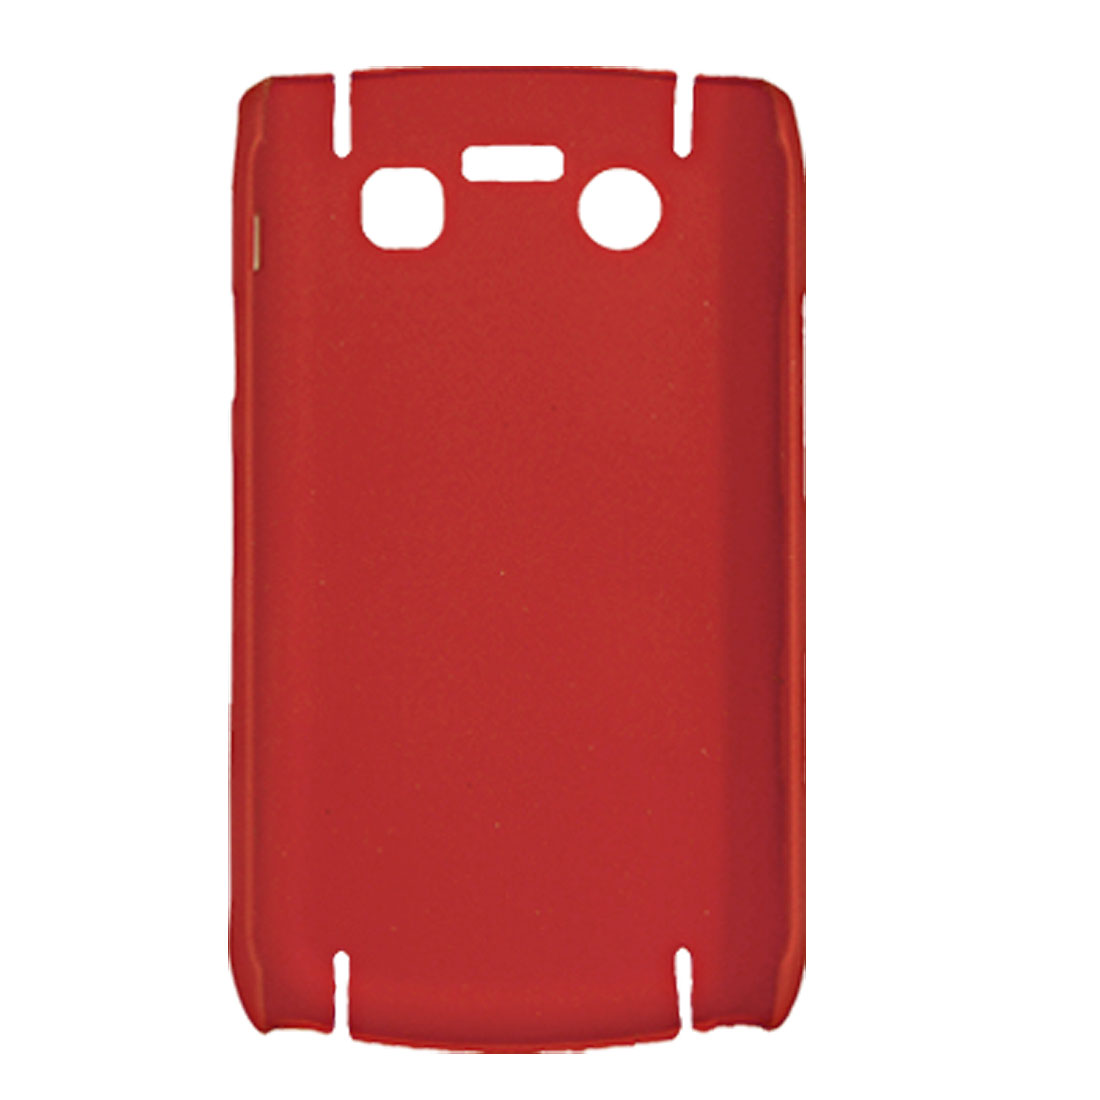 Hard Plastic Rubberized Cover Case for BlackBerry Bold 9700